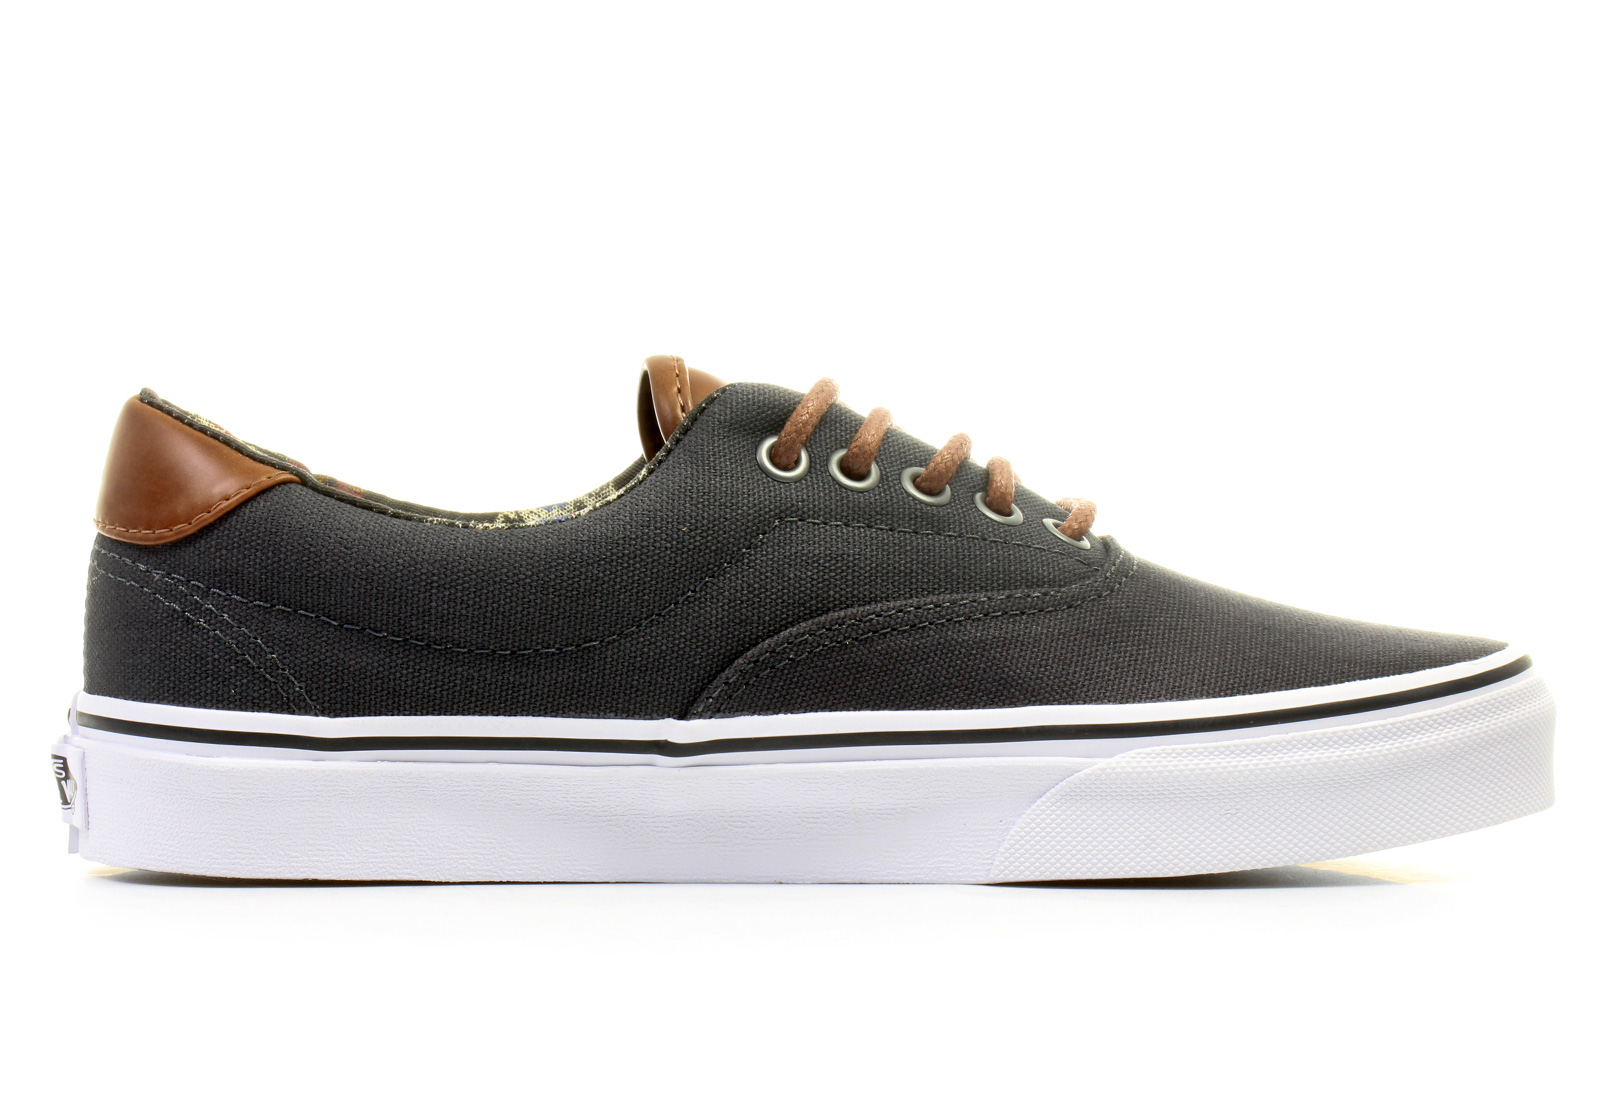 vans era do chodzenia